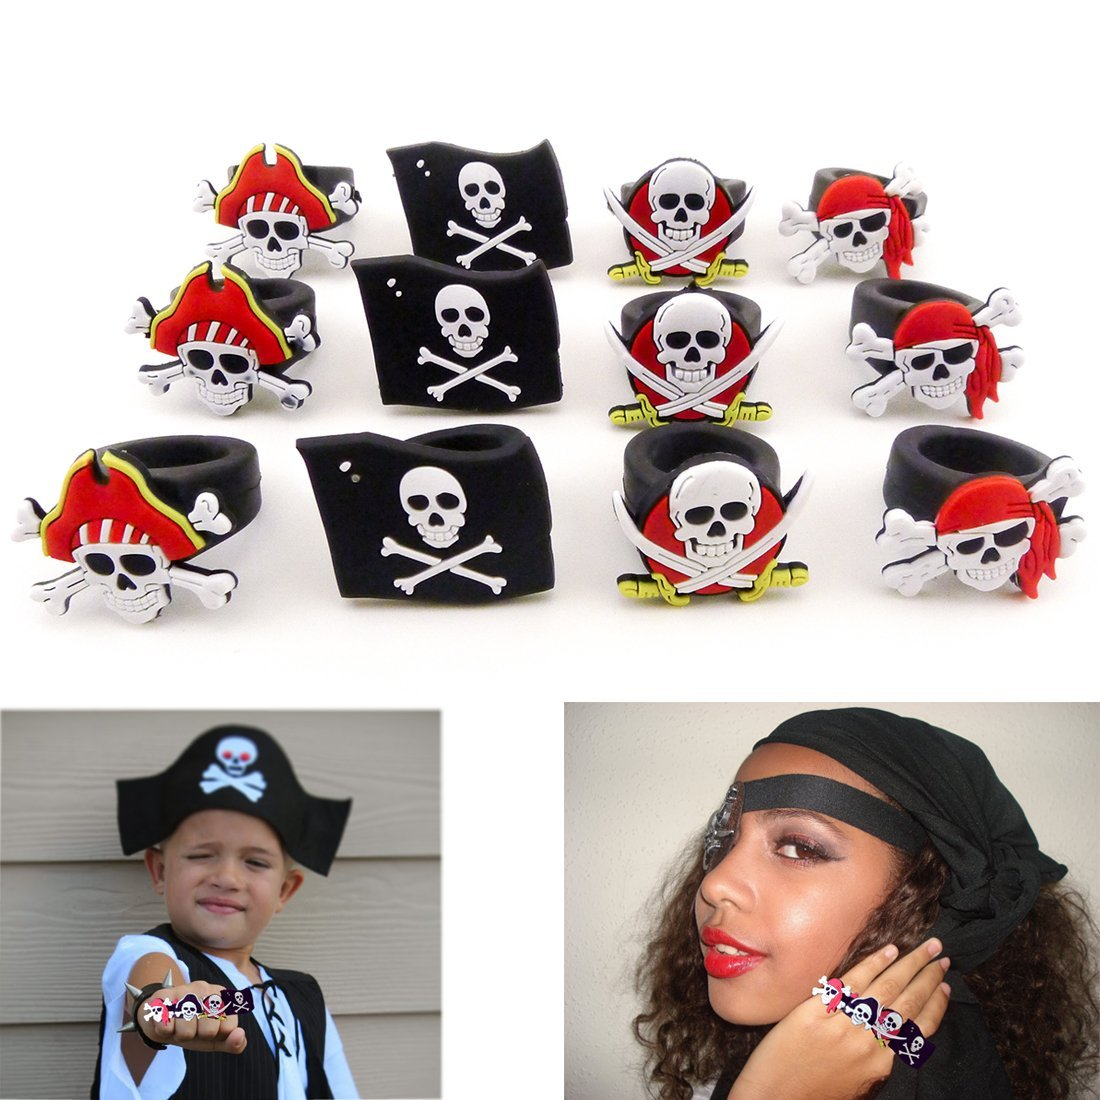 Rubber Pirate Rings - 2 Dozen Pirate Night on Cruise, Halloween, Costume Dress Up for Party, Easter Egg Fillers, and More, Dazzling Toys, Black